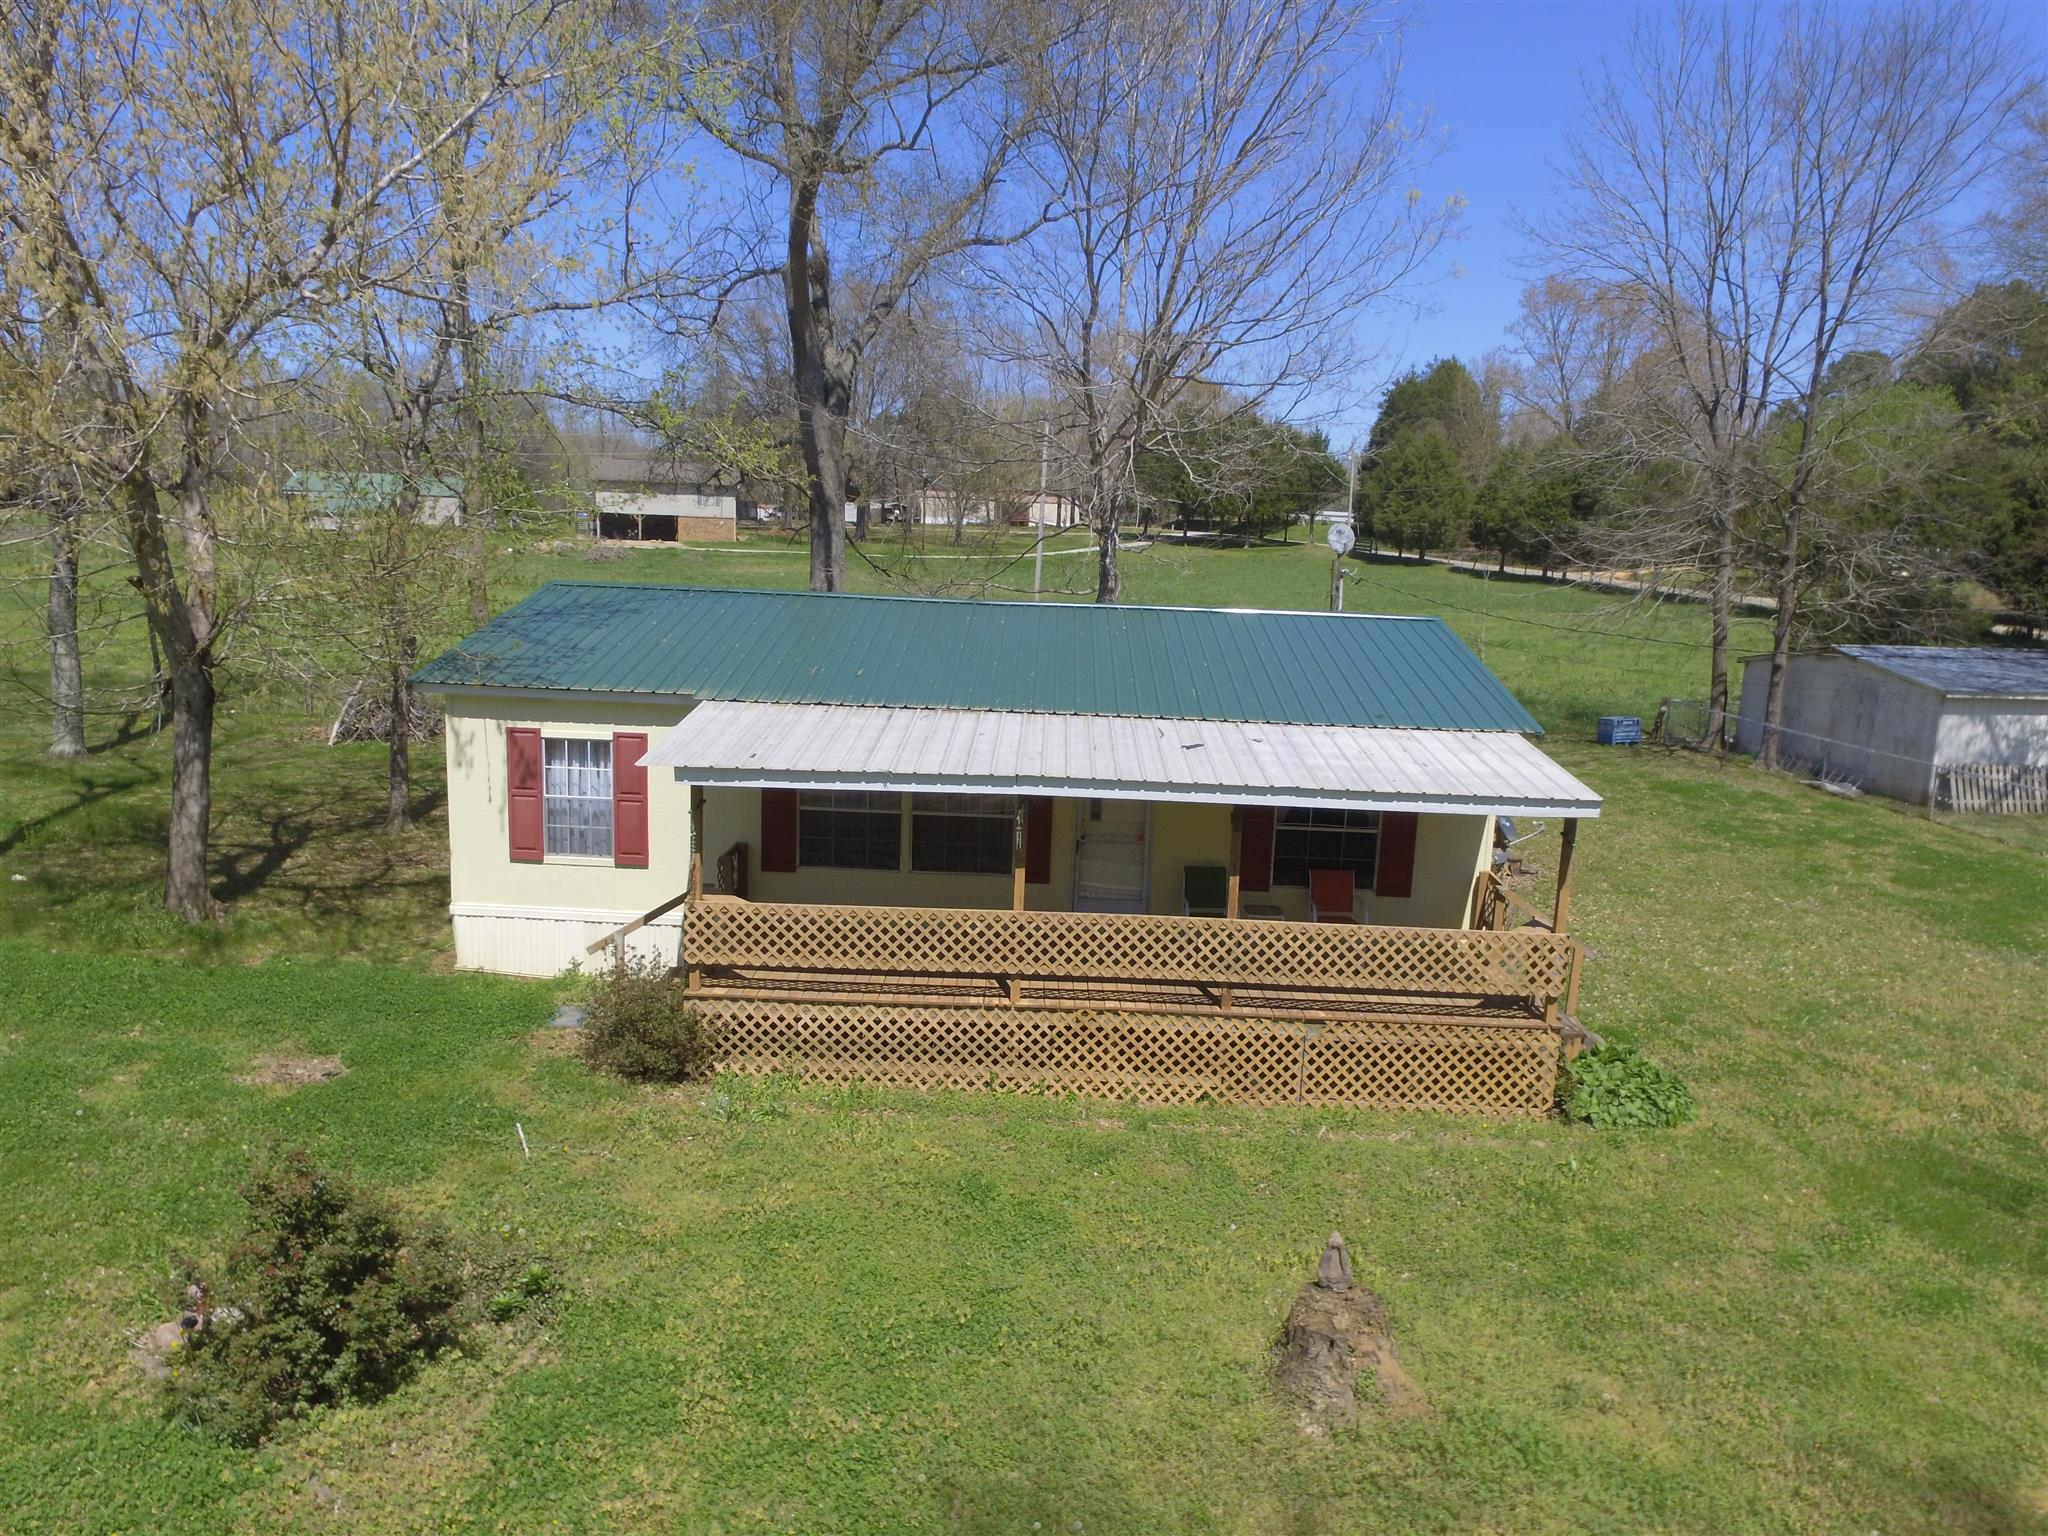 36 Hummingbird Ln, Linden, TN 37096 - Linden, TN real estate listing